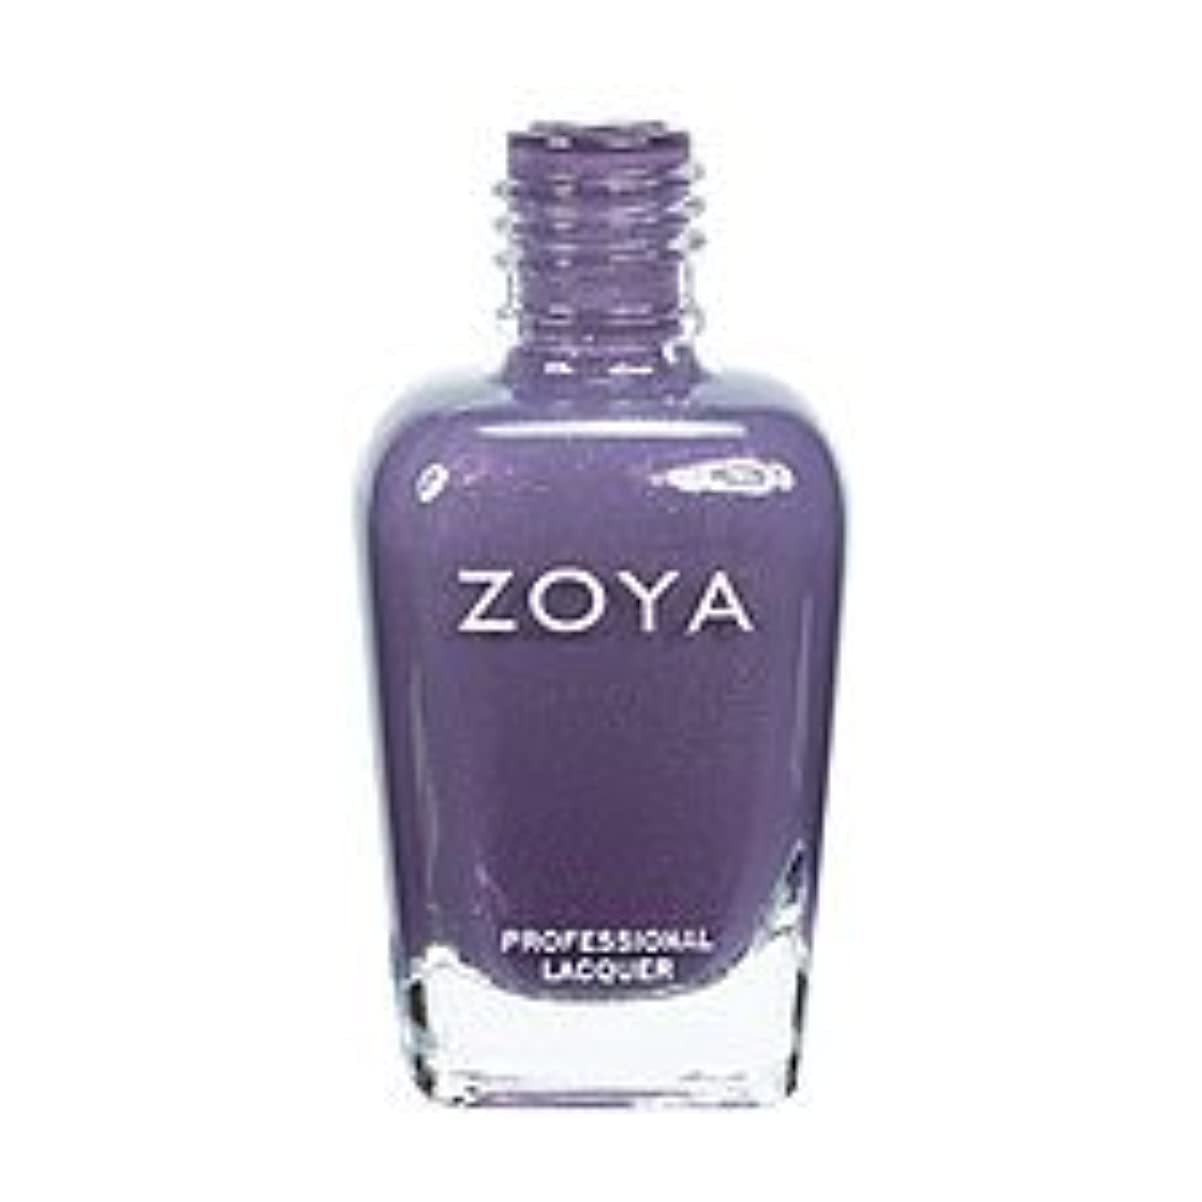 Zoya Vernis à ongles - Lotus ZP 589- Feel Collection 2012